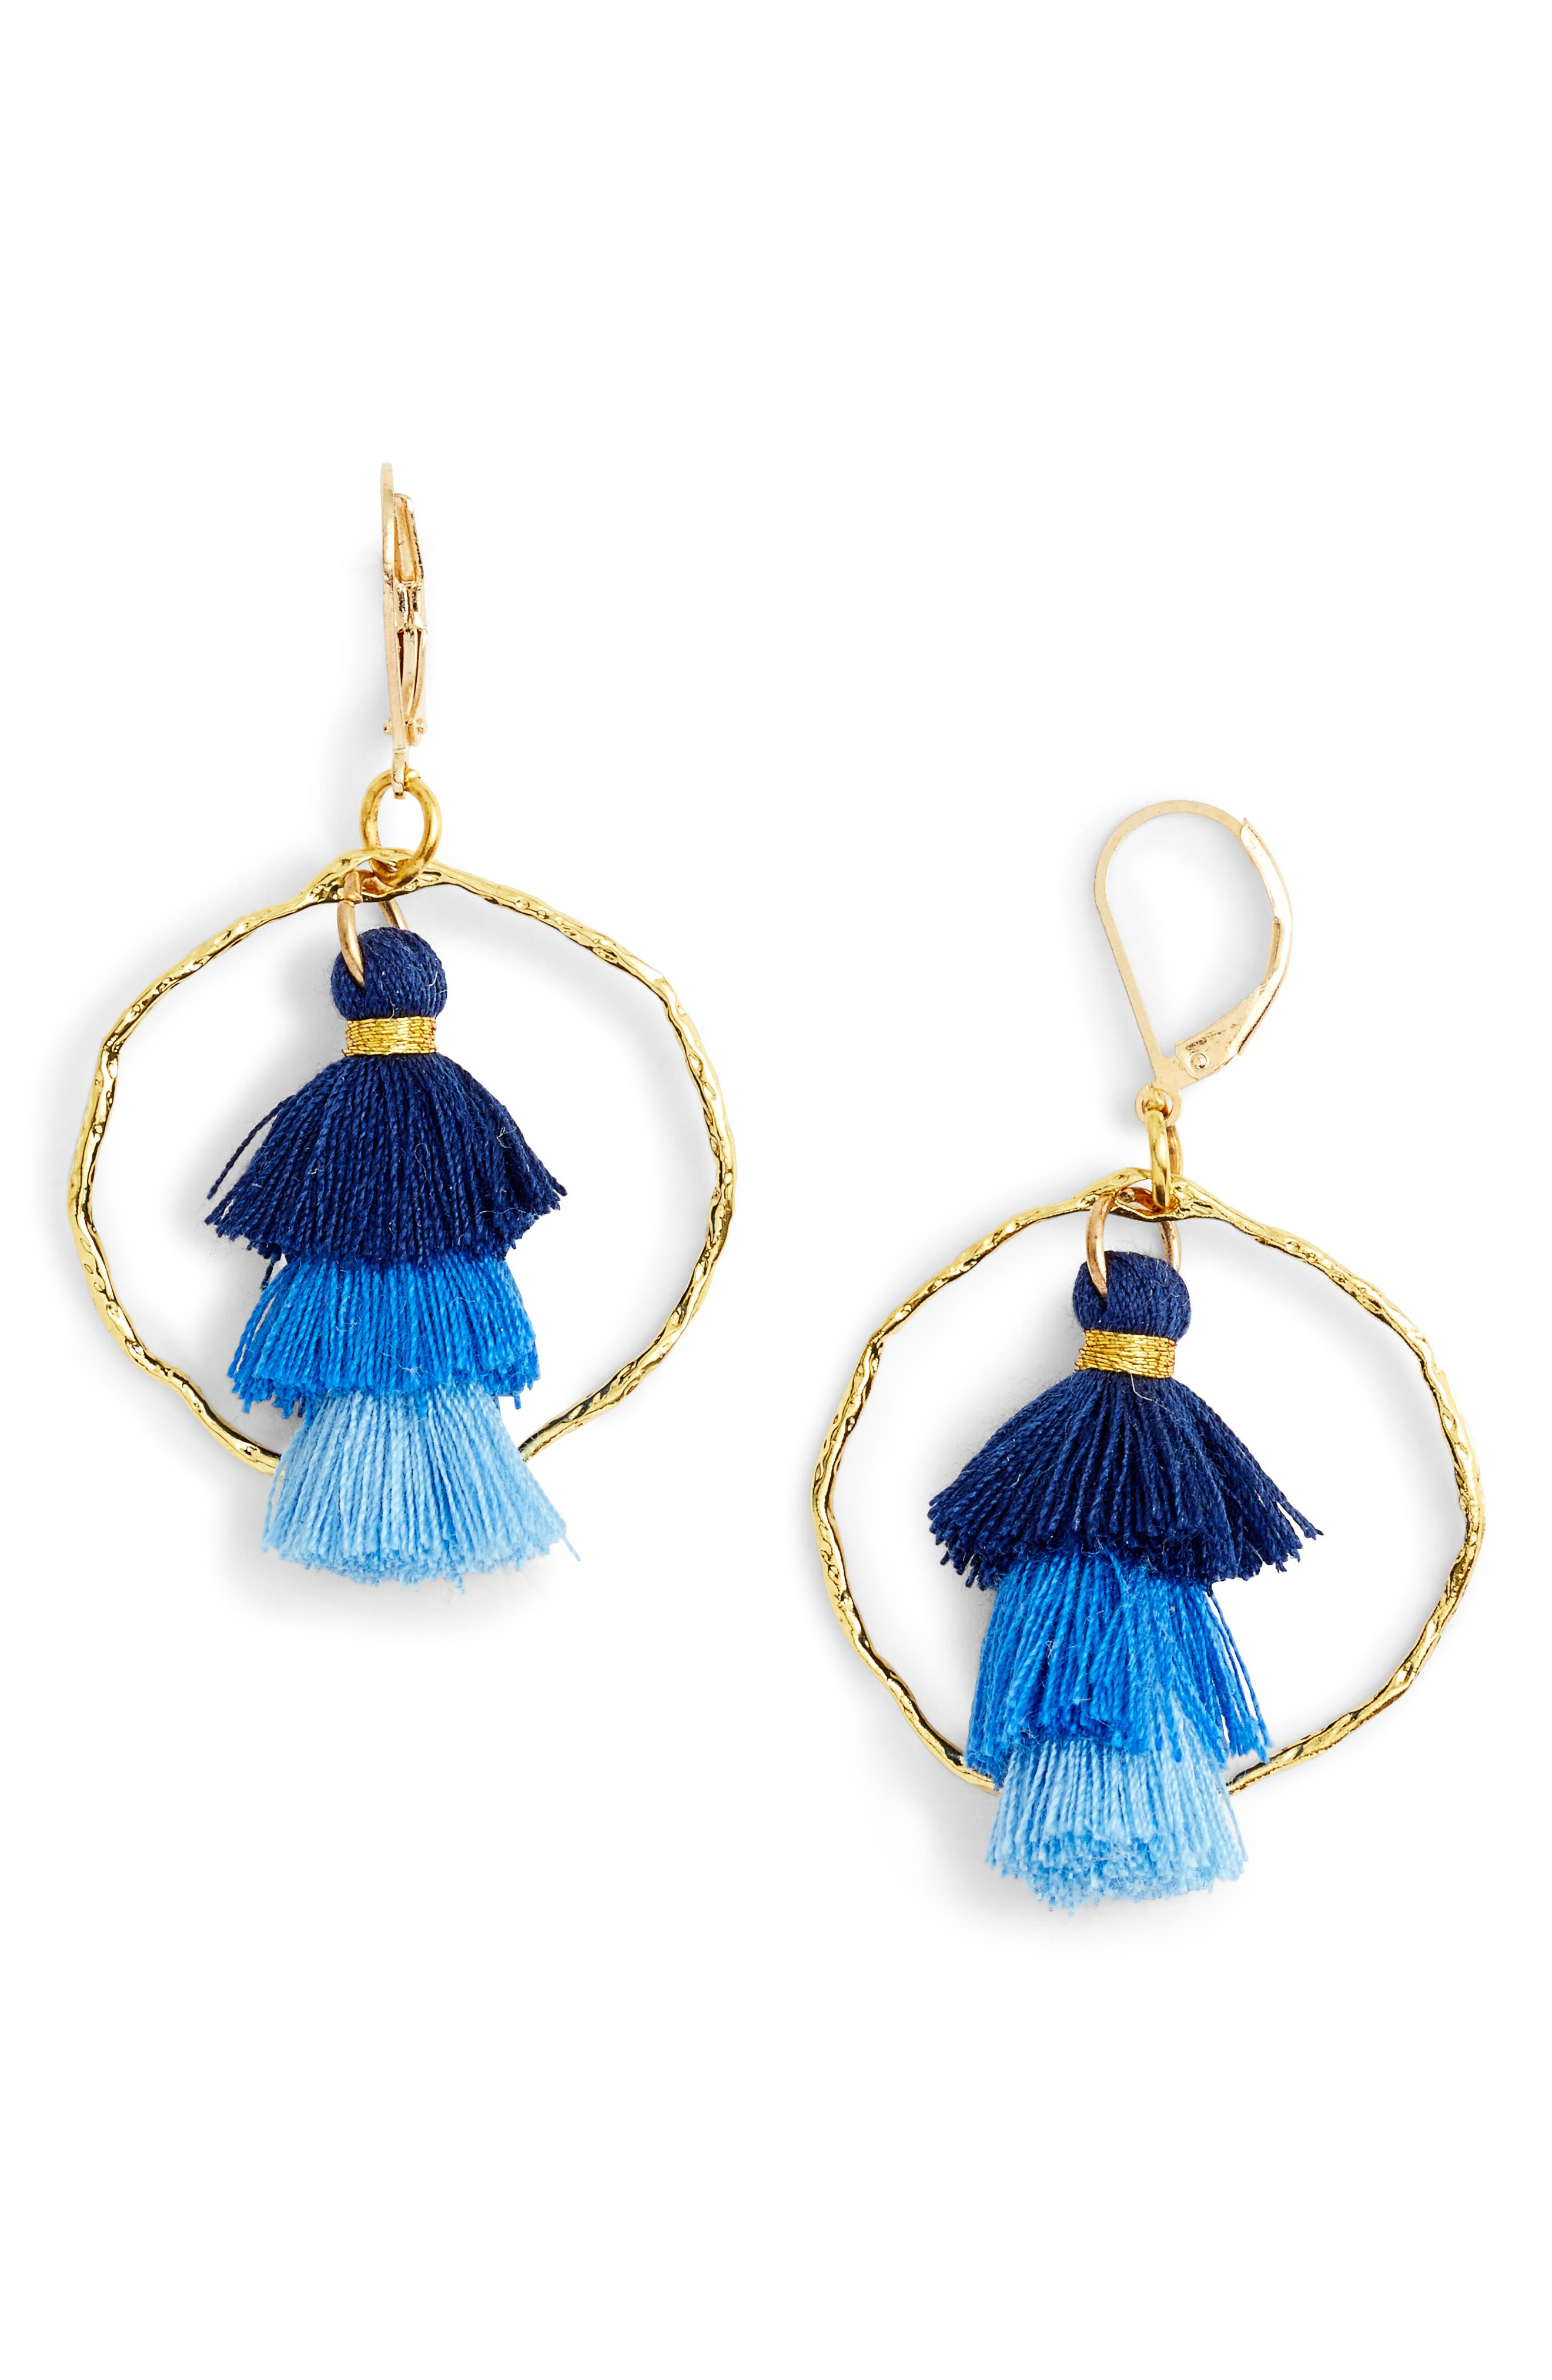 Ibiza Tassel & Hammered Hoop Earrings,                             Main thumbnail 1, color,                             Blue/ Gold